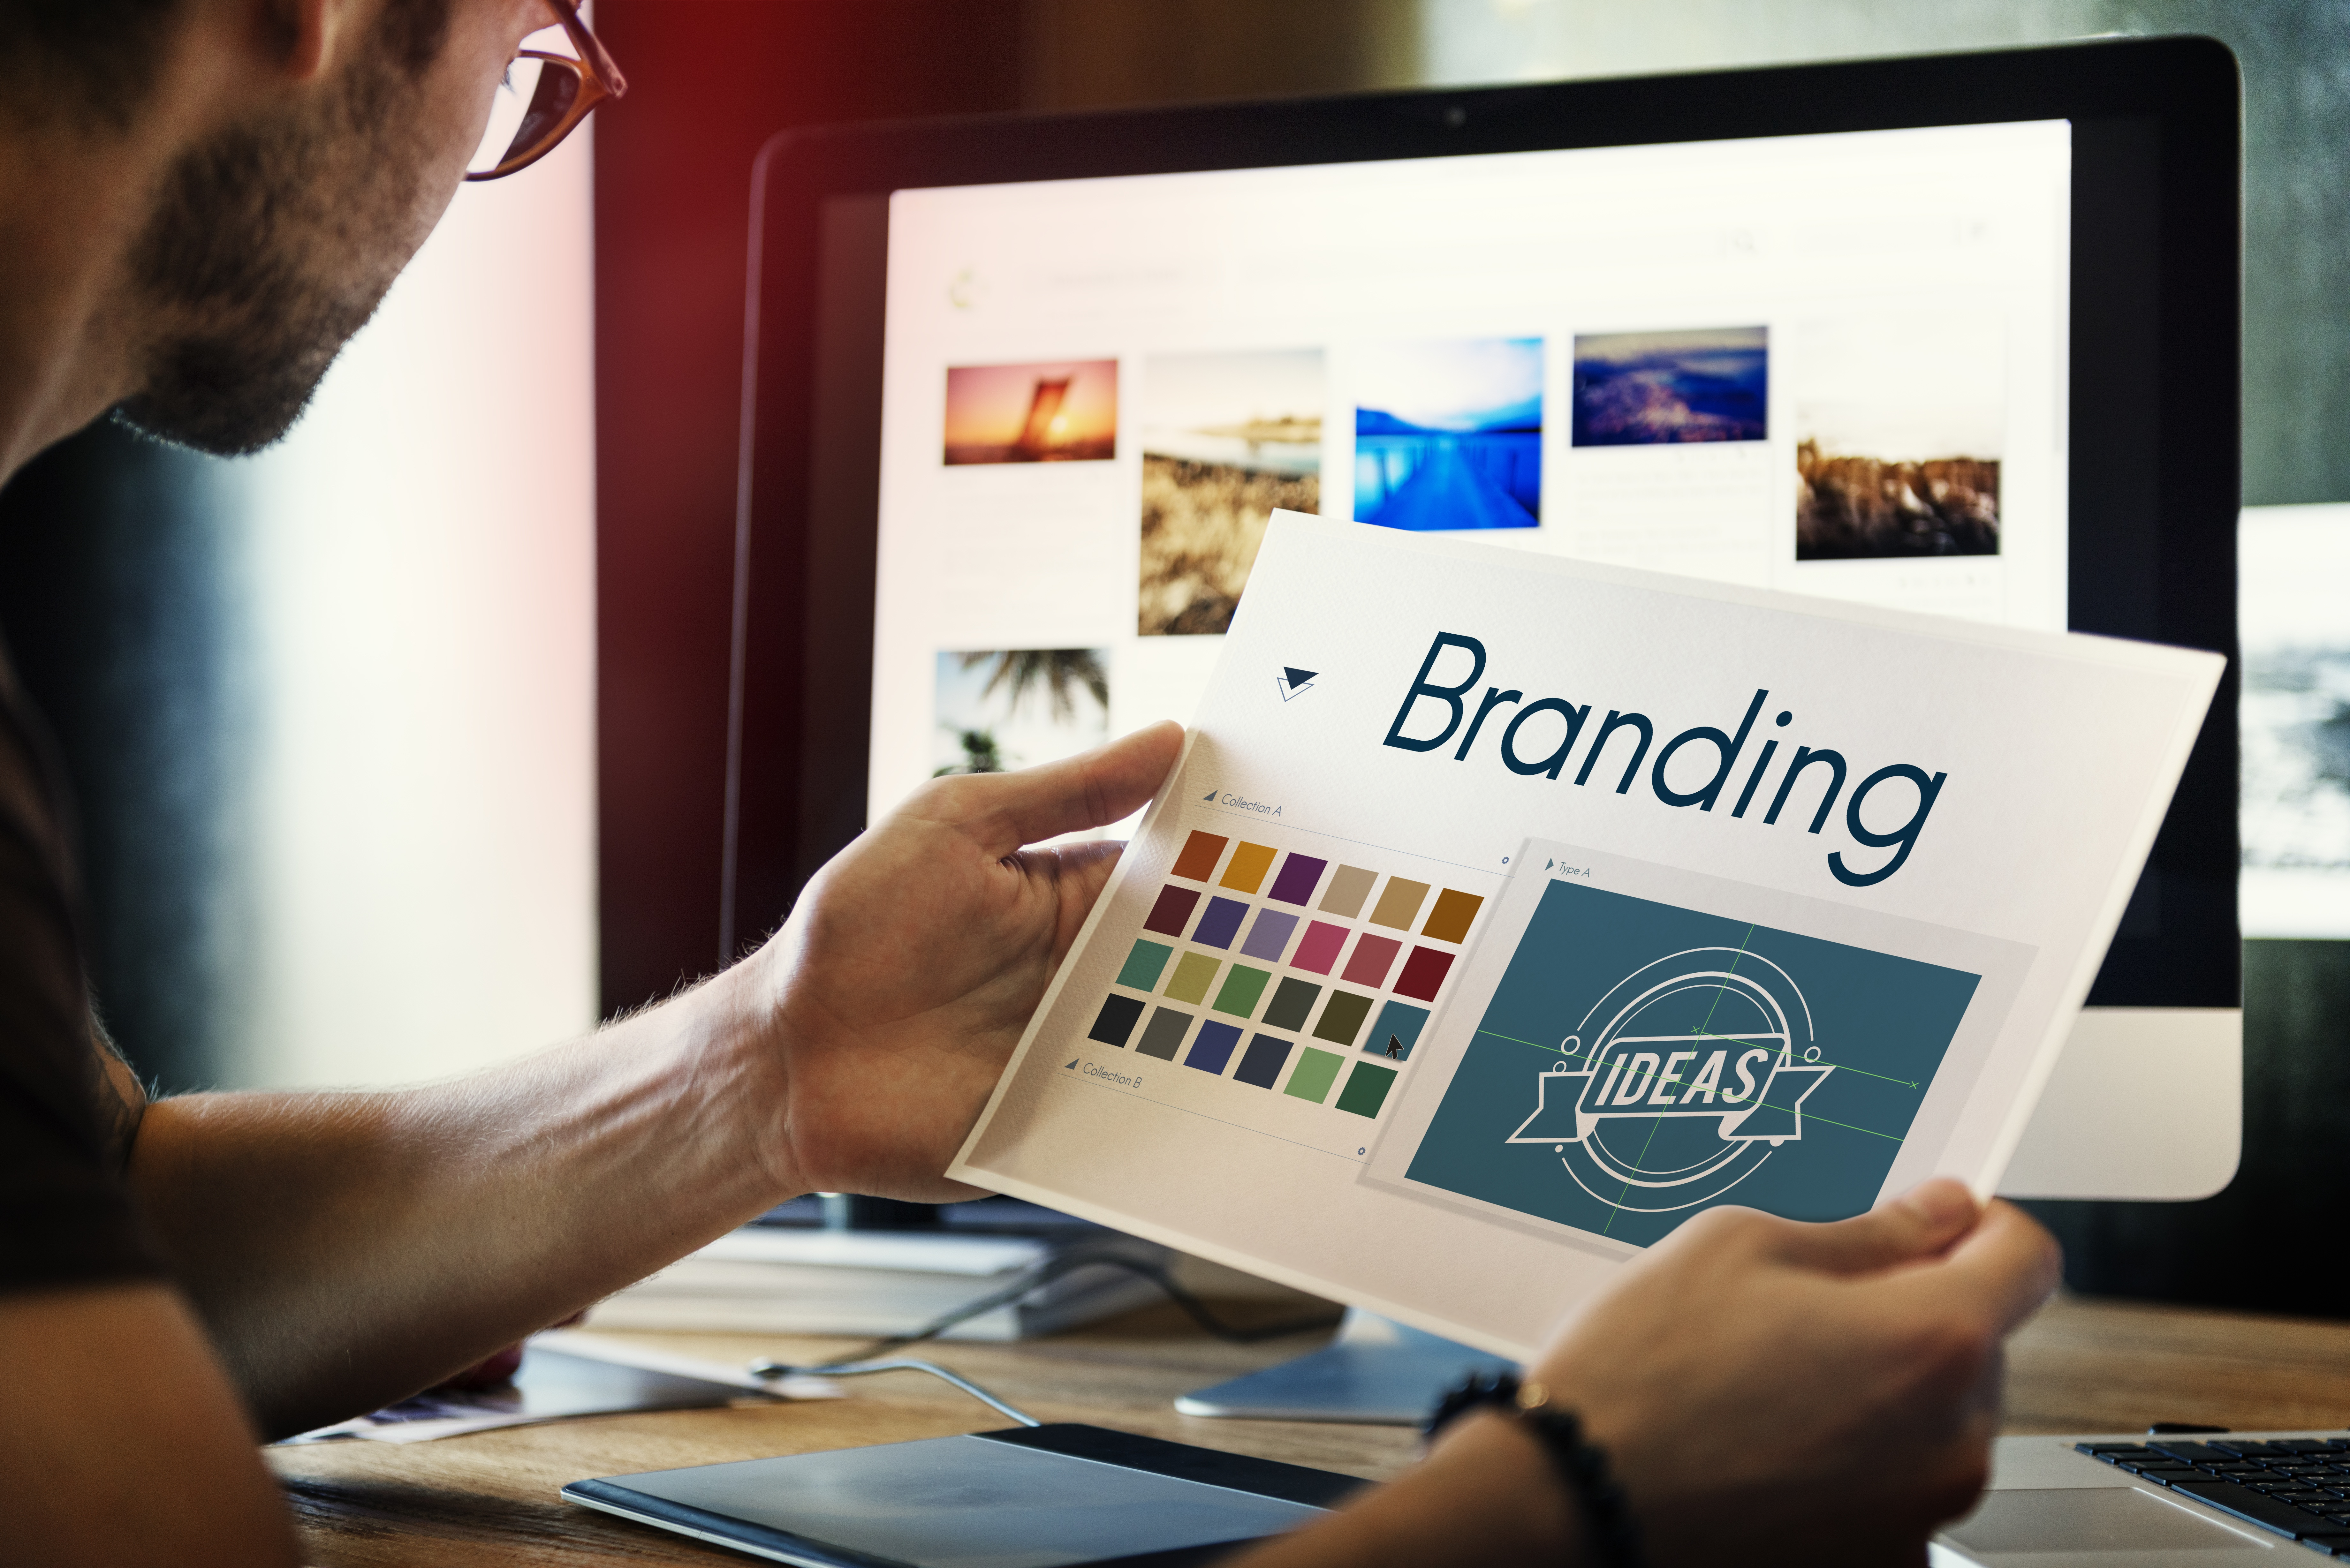 Changing aspects of the brand experience too often can have negative consequences for your brand